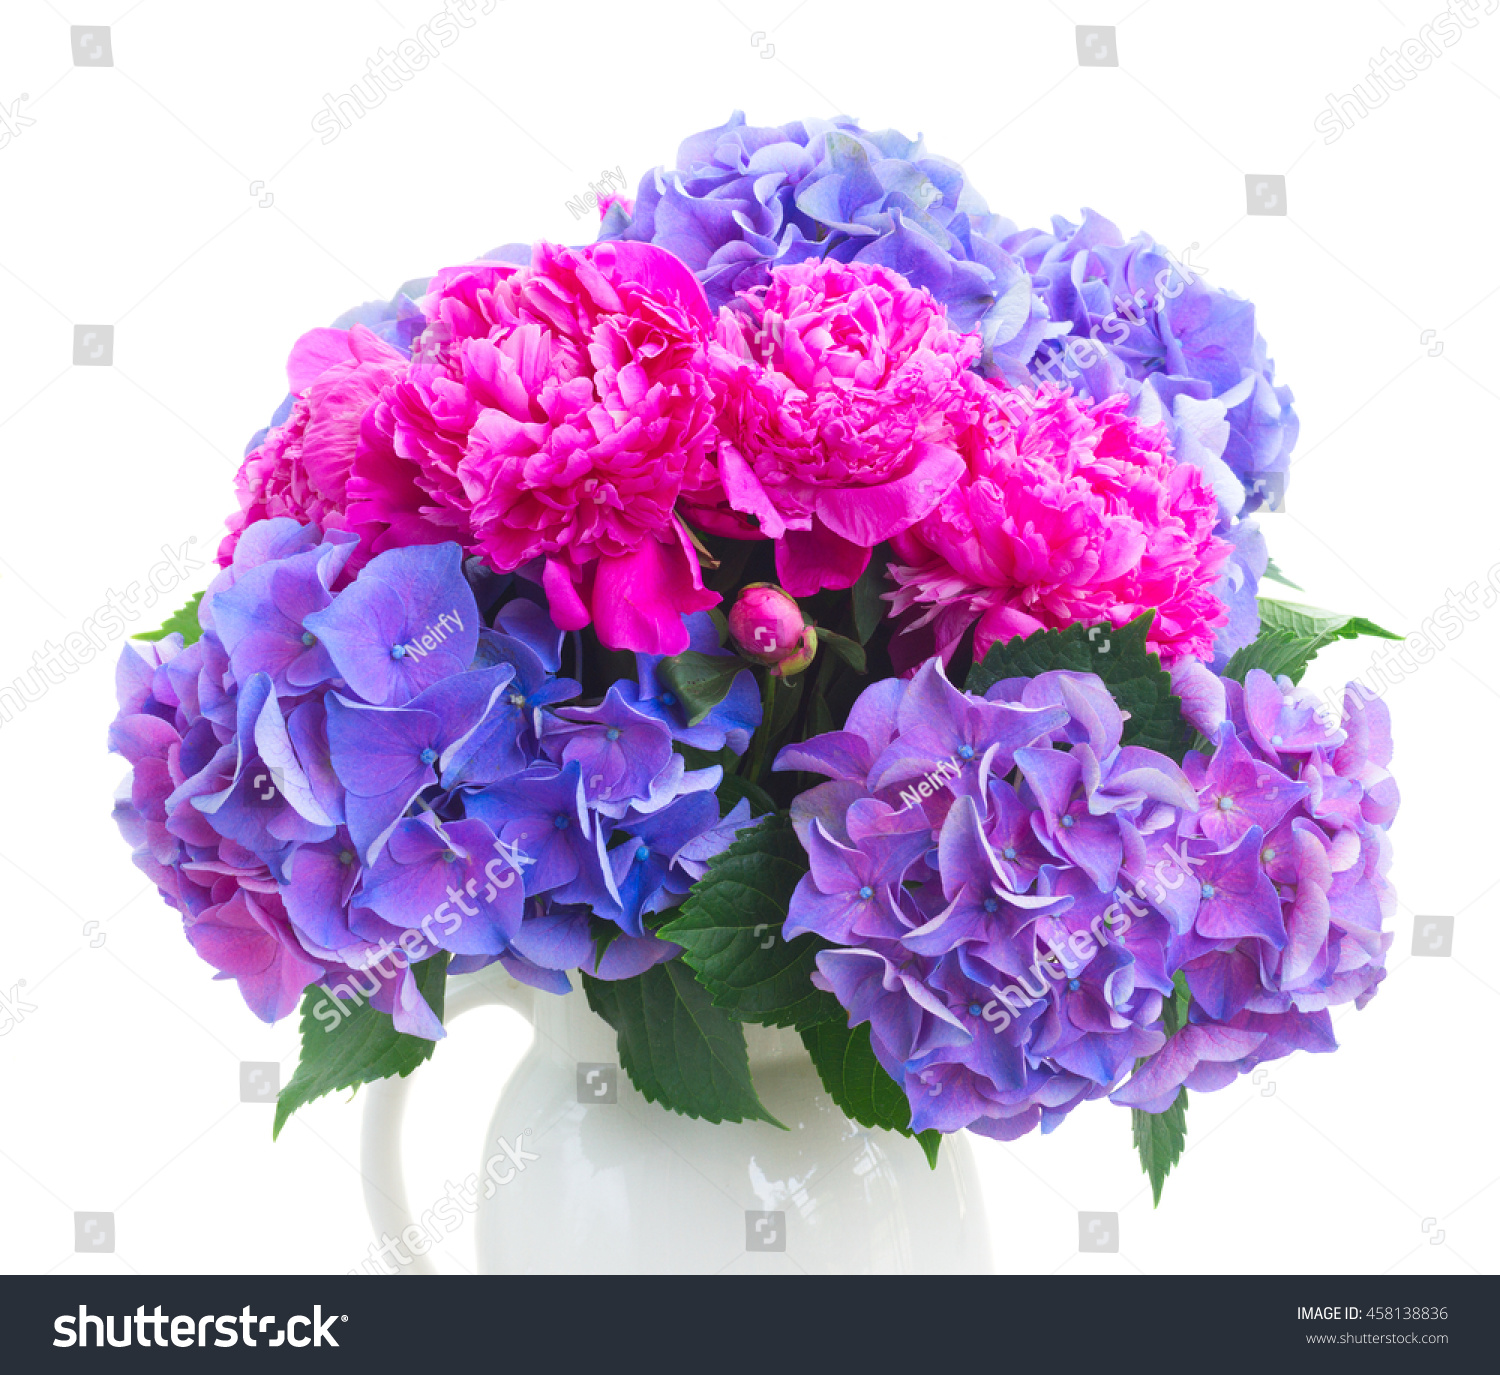 Bright pink peony eustoma and blue hortensia fresh flowers bouquet id 458138836 izmirmasajfo